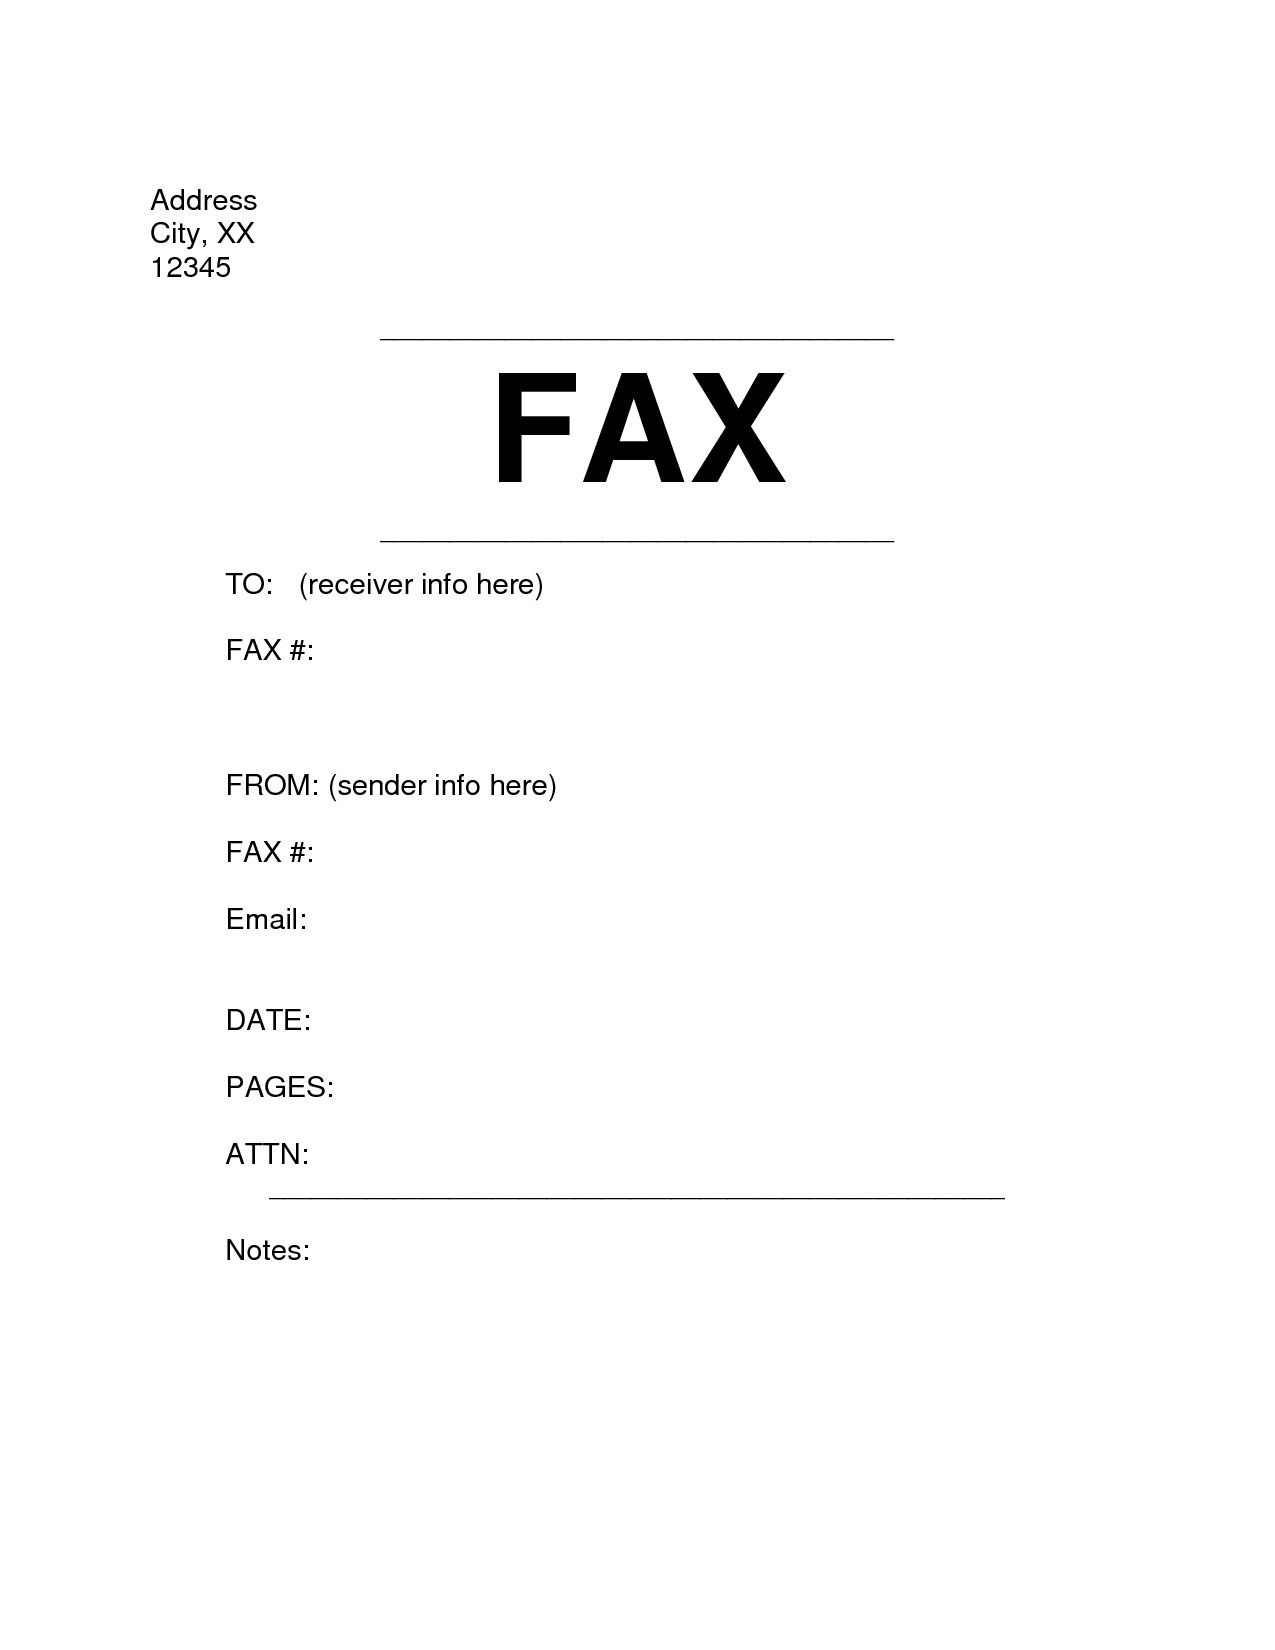 how to make a cover sheet for a fax fax cover sheet for microsoft cover letter network administrator